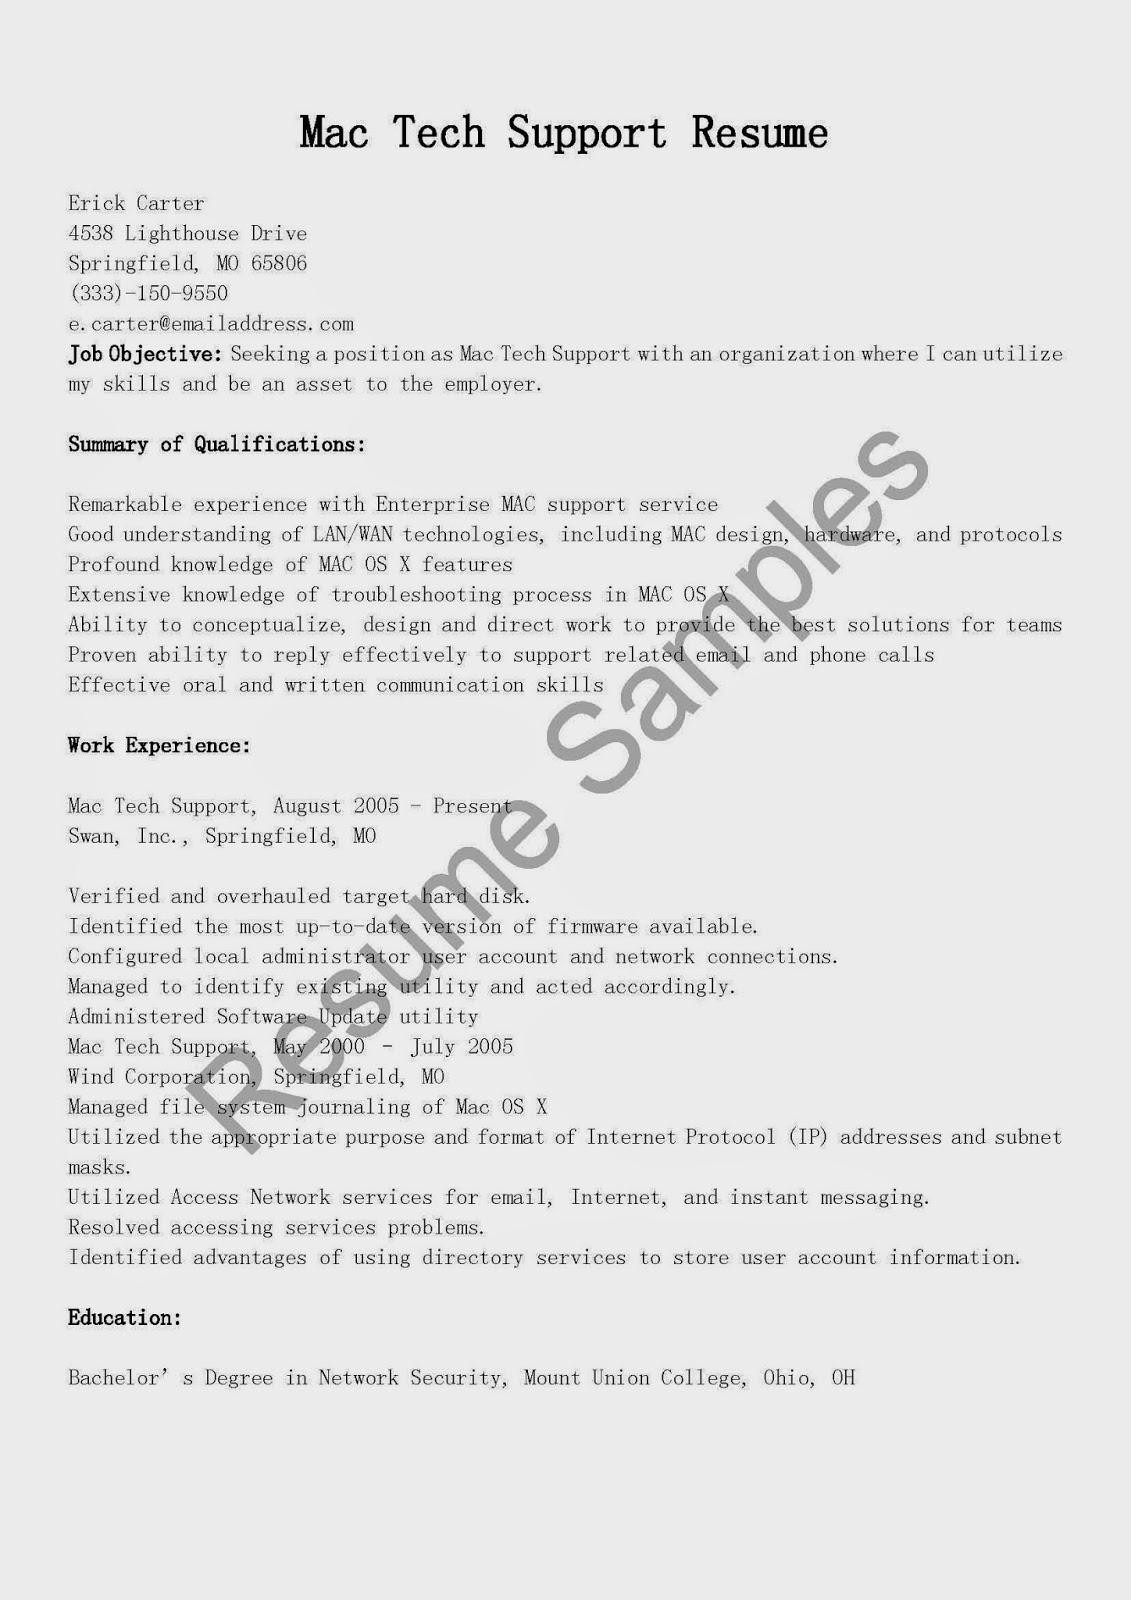 Technical Support Resume Sample Resume Samples Mac Tech Support Resume Sample